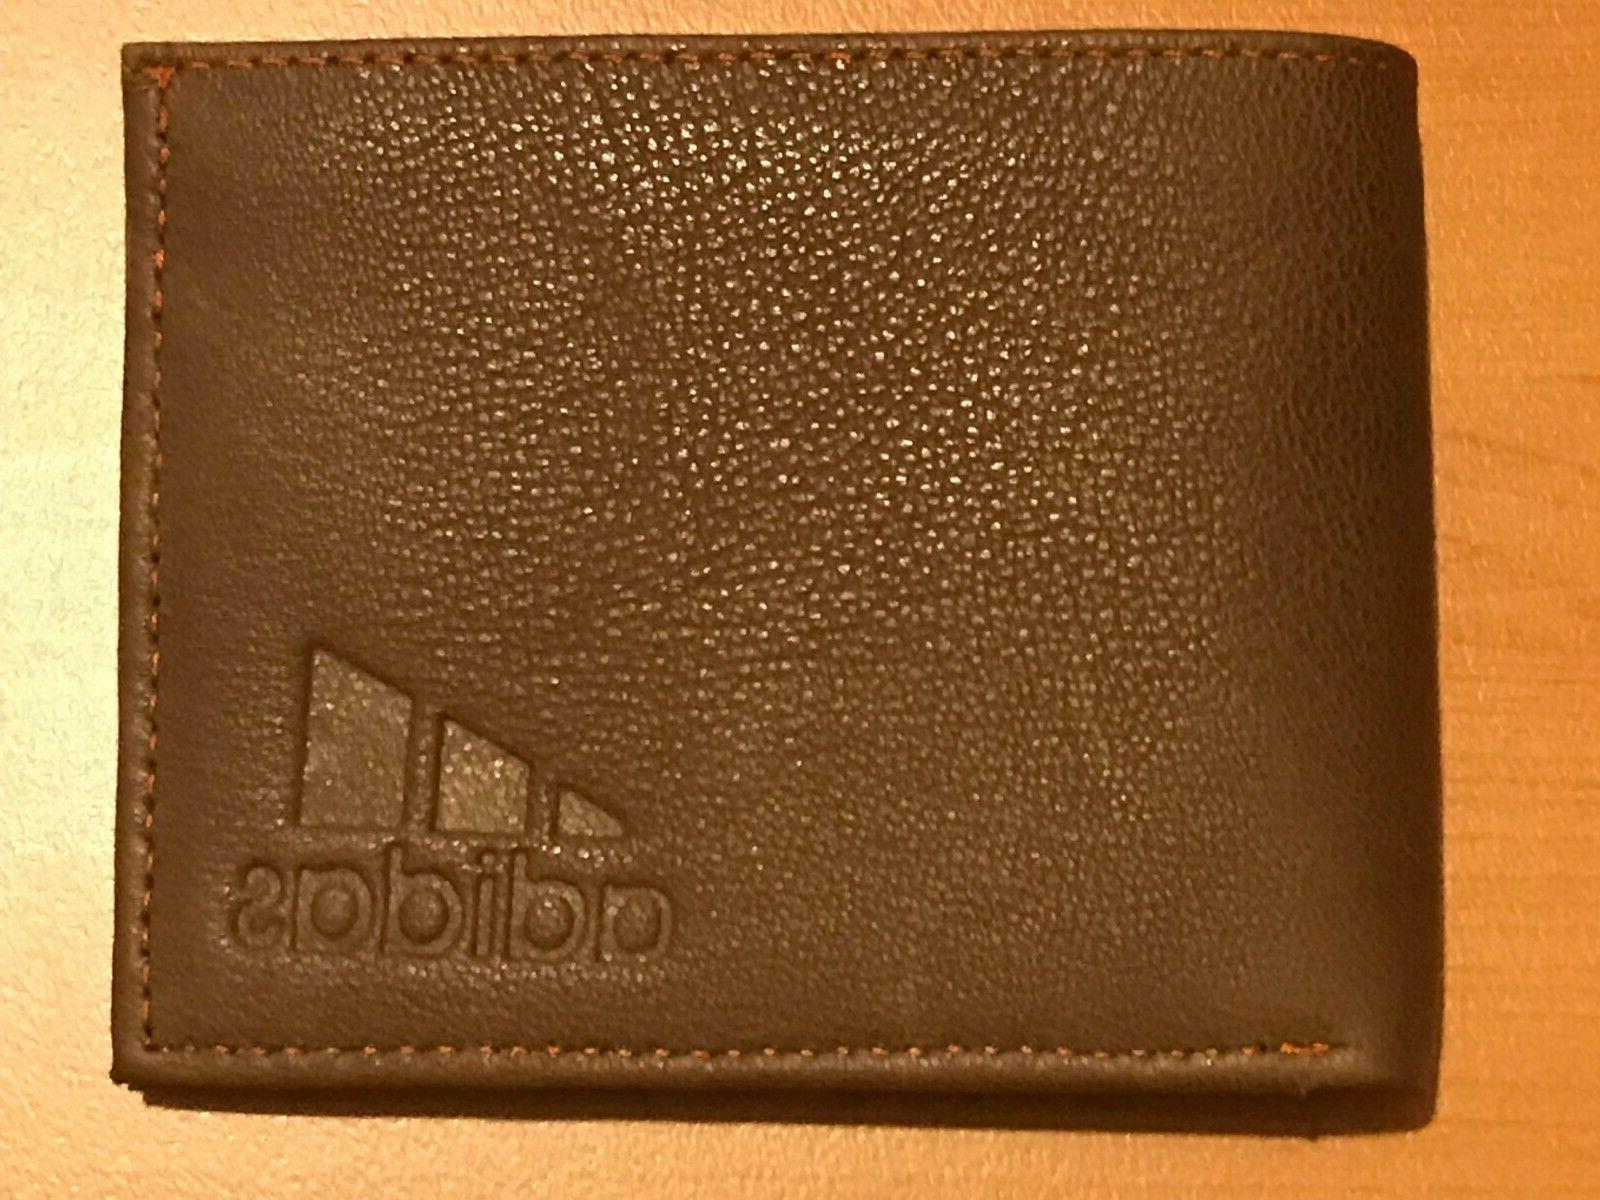 brand new genuine leather mens wallet brown